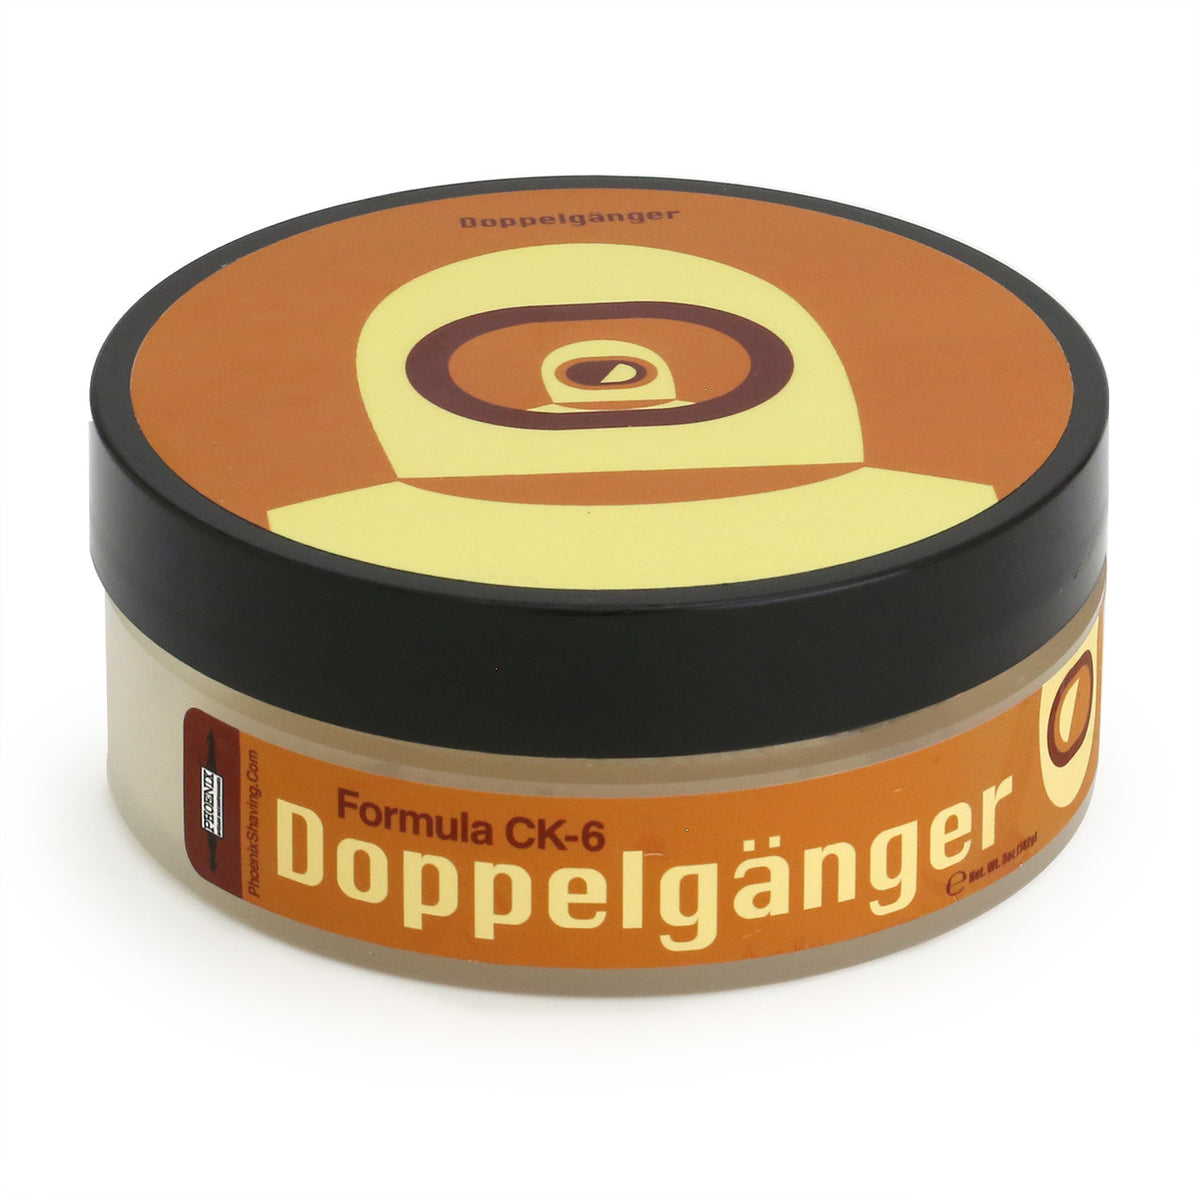 Phoenix Shaving Doppelgänger Orange Shave Soap CK6 - Homage to Chaps